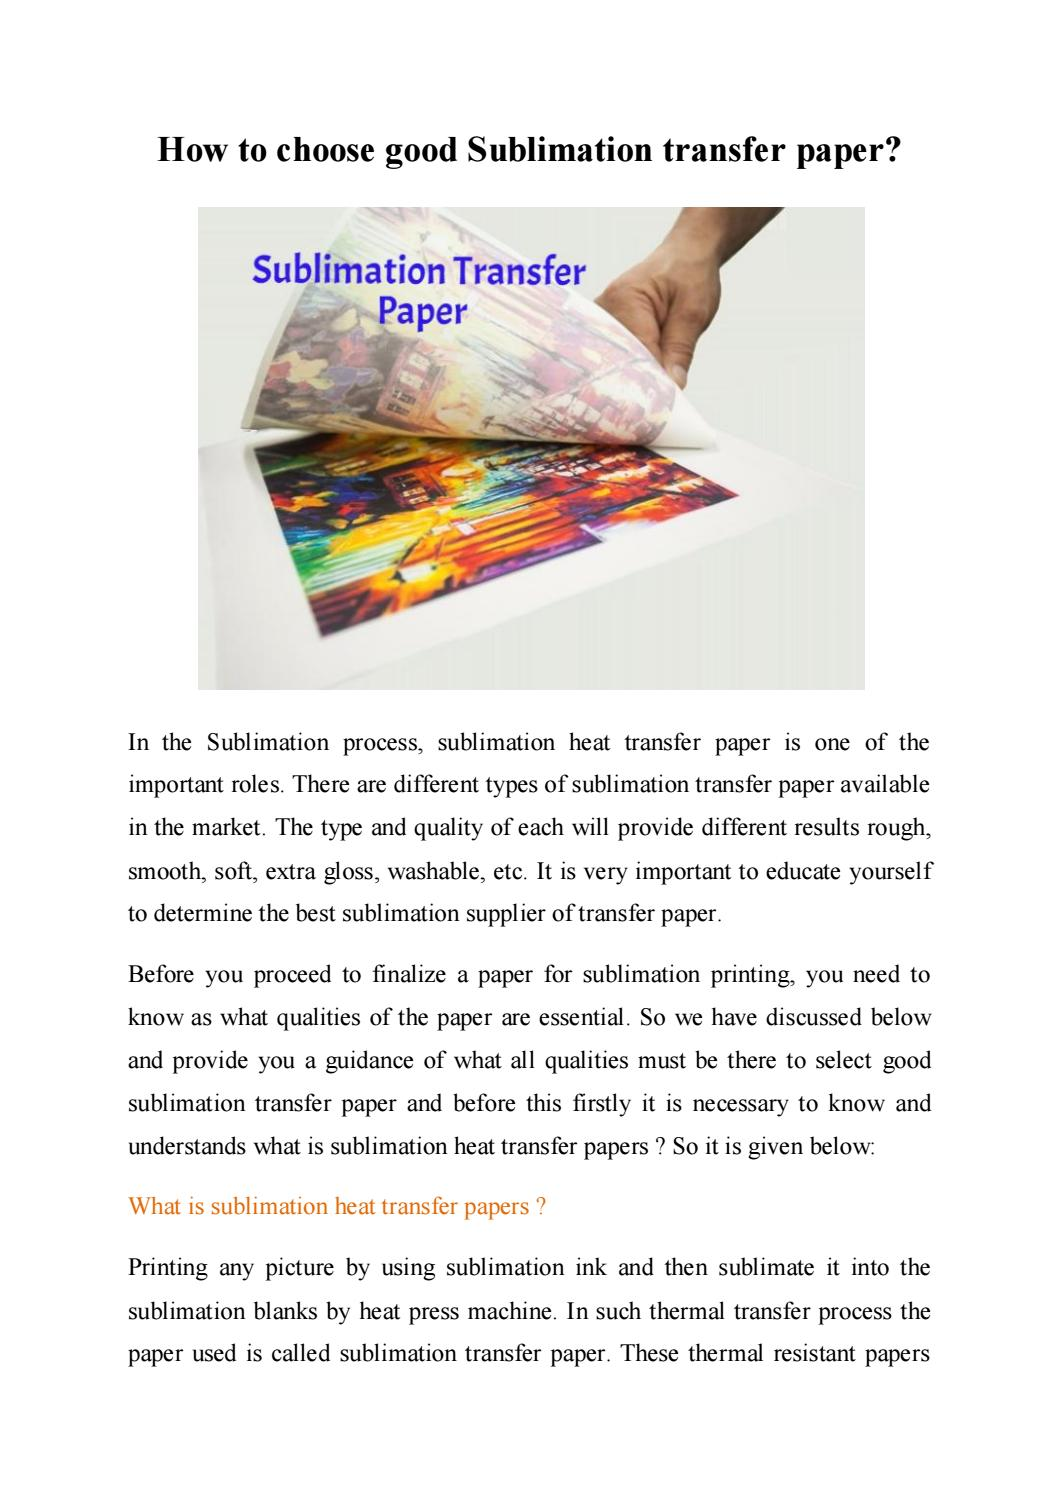 How to choose good sublimation transfer paper by The